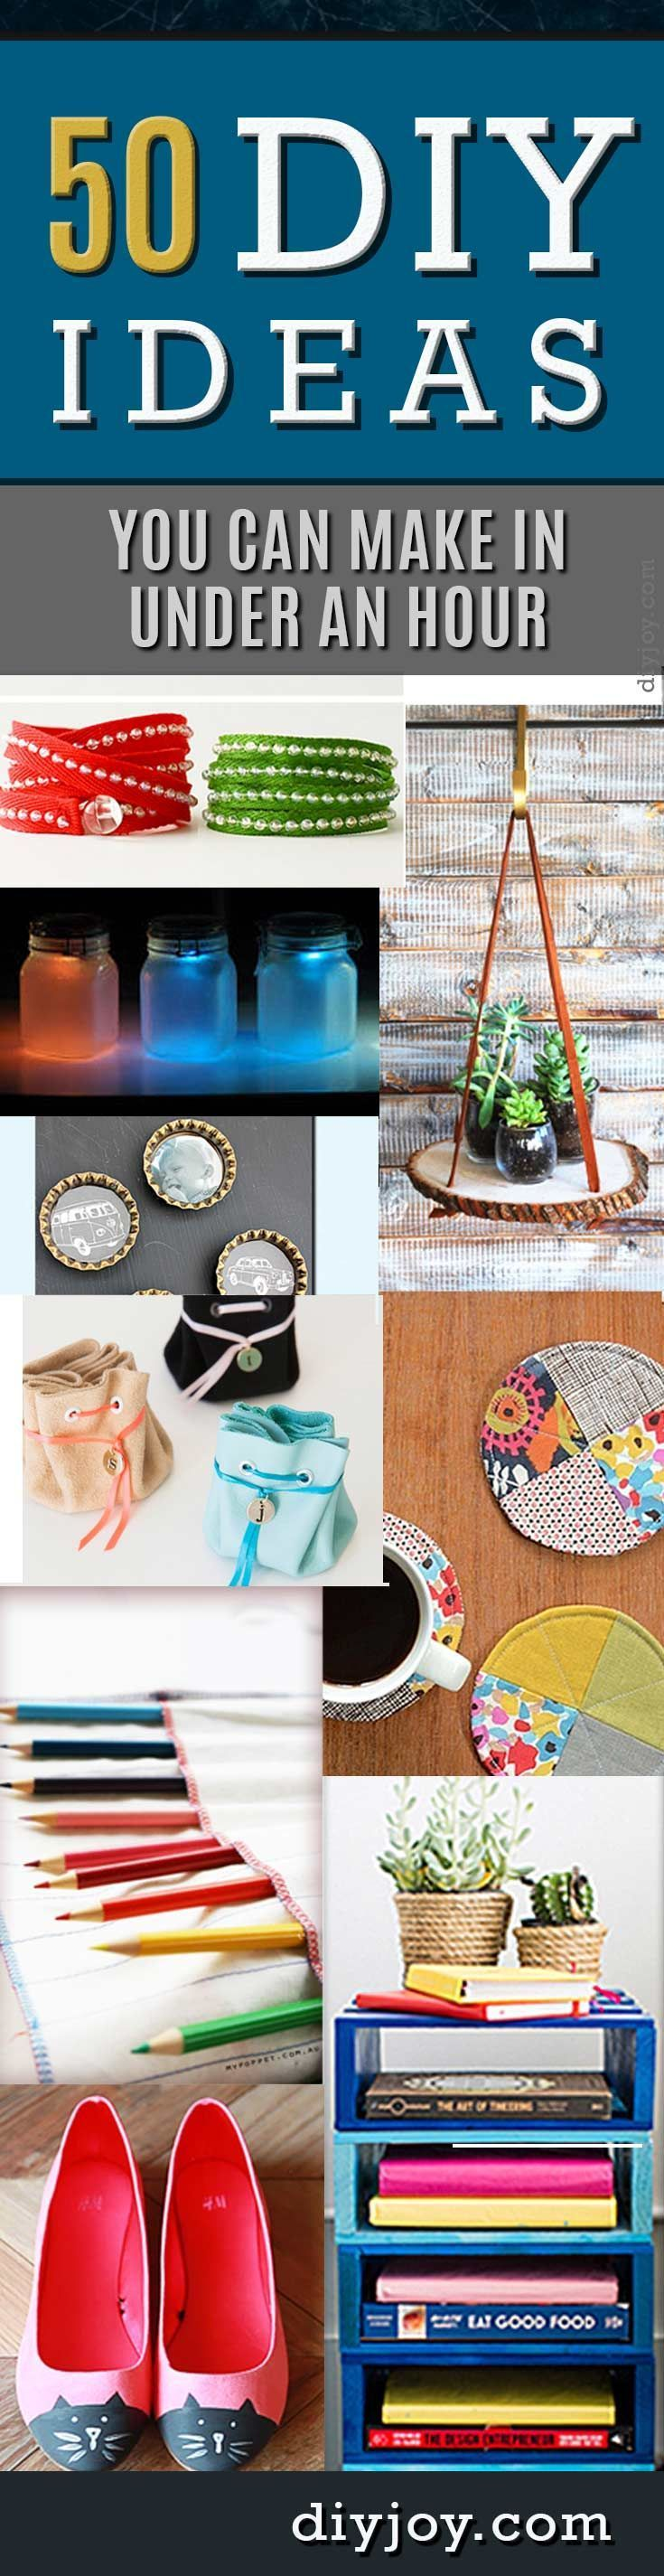 Fast DIY Projects and Easy Crafts Ideas You Can Make in Under an Hour